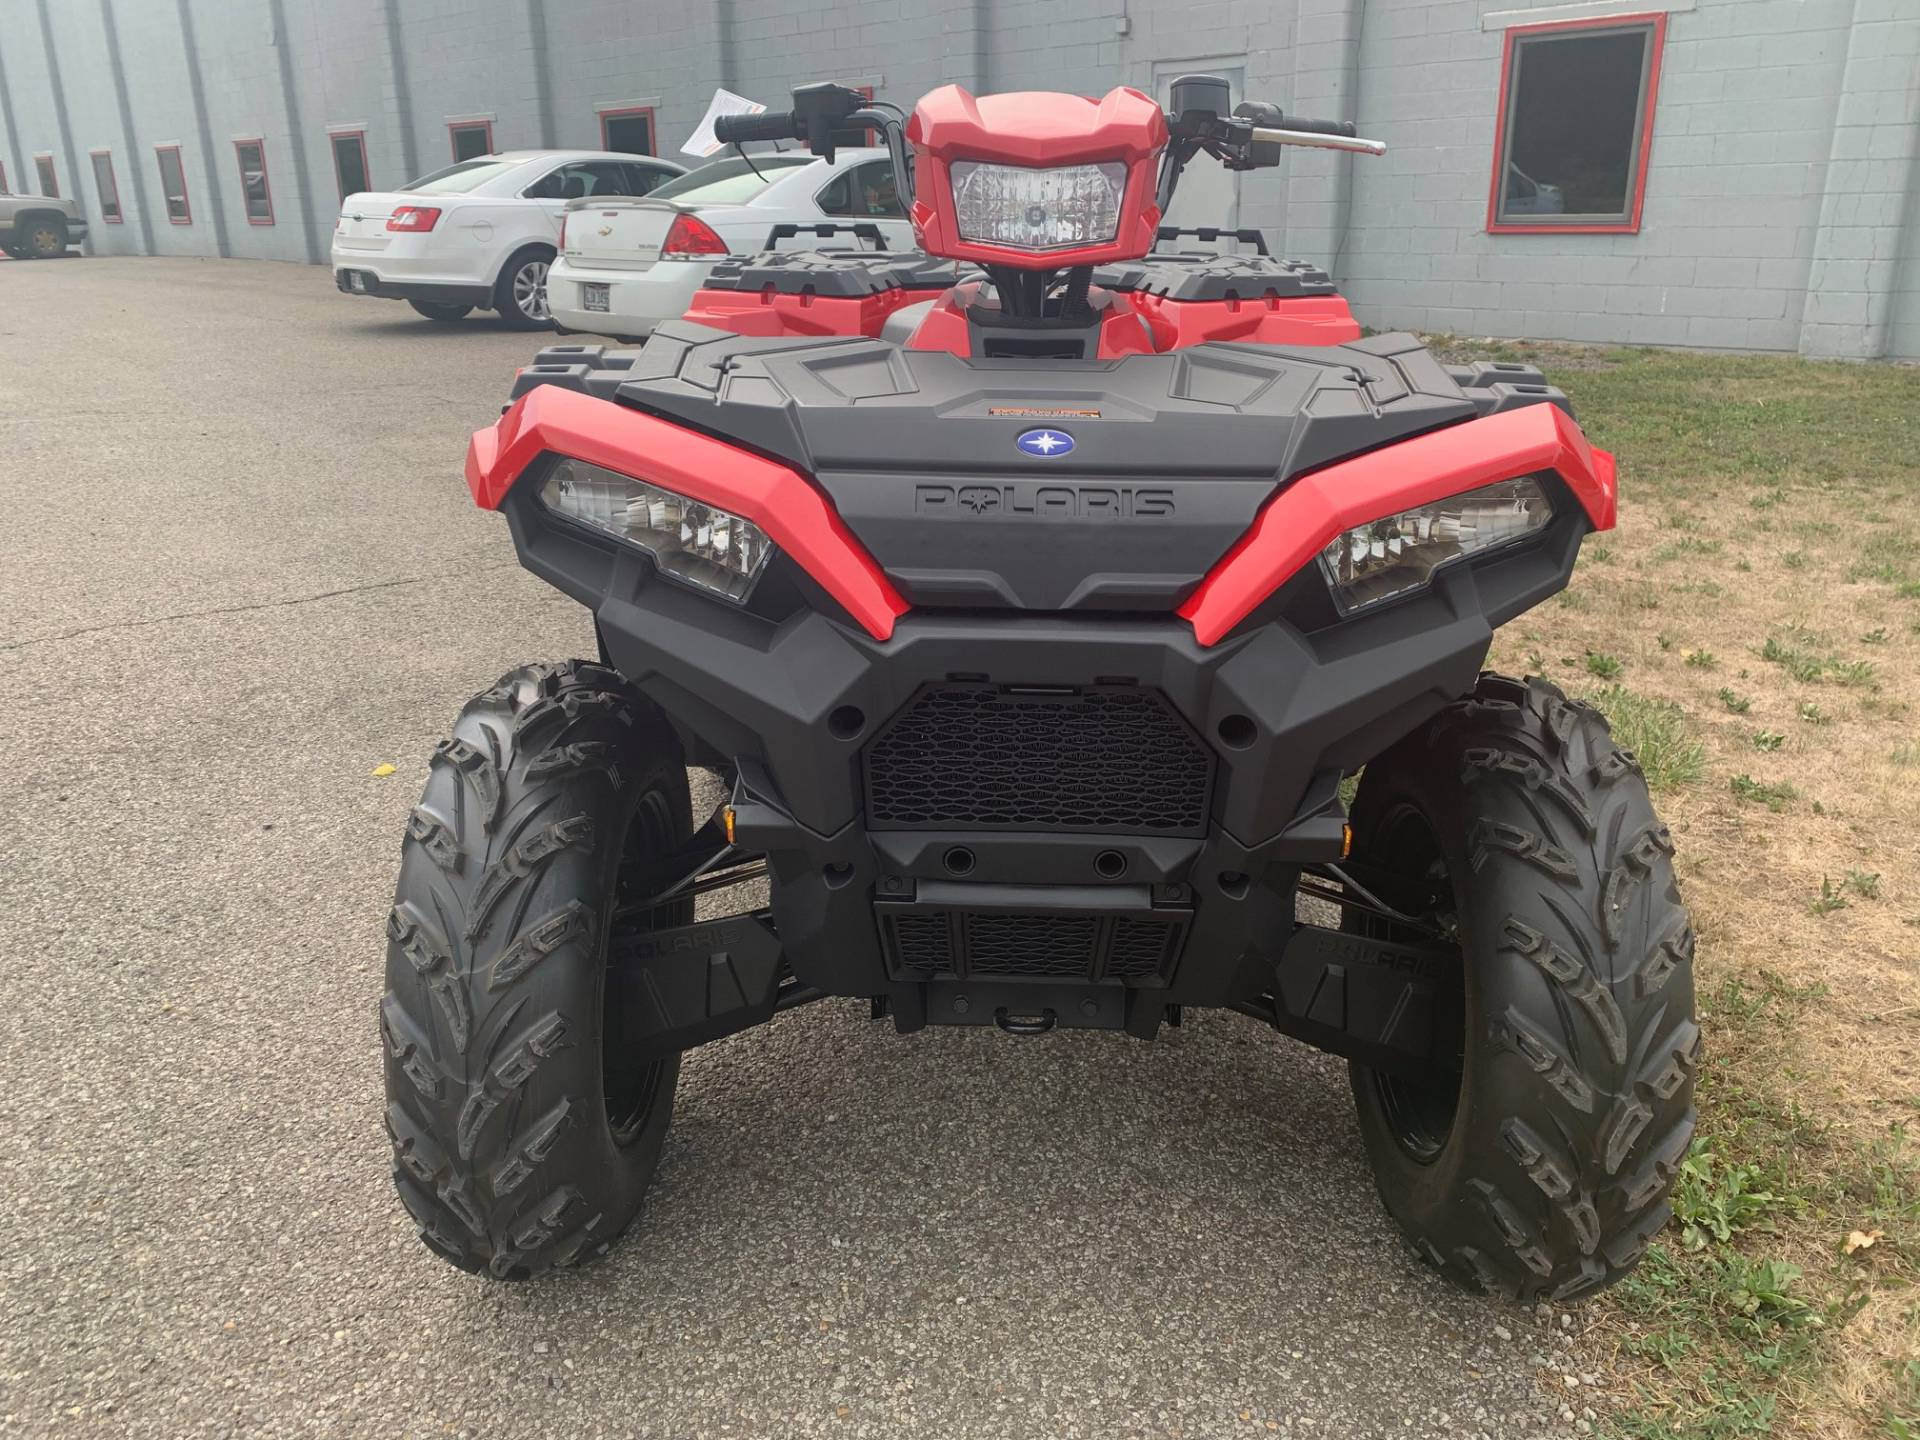 2020 Polaris Sportsman 850 in Brilliant, Ohio - Photo 8